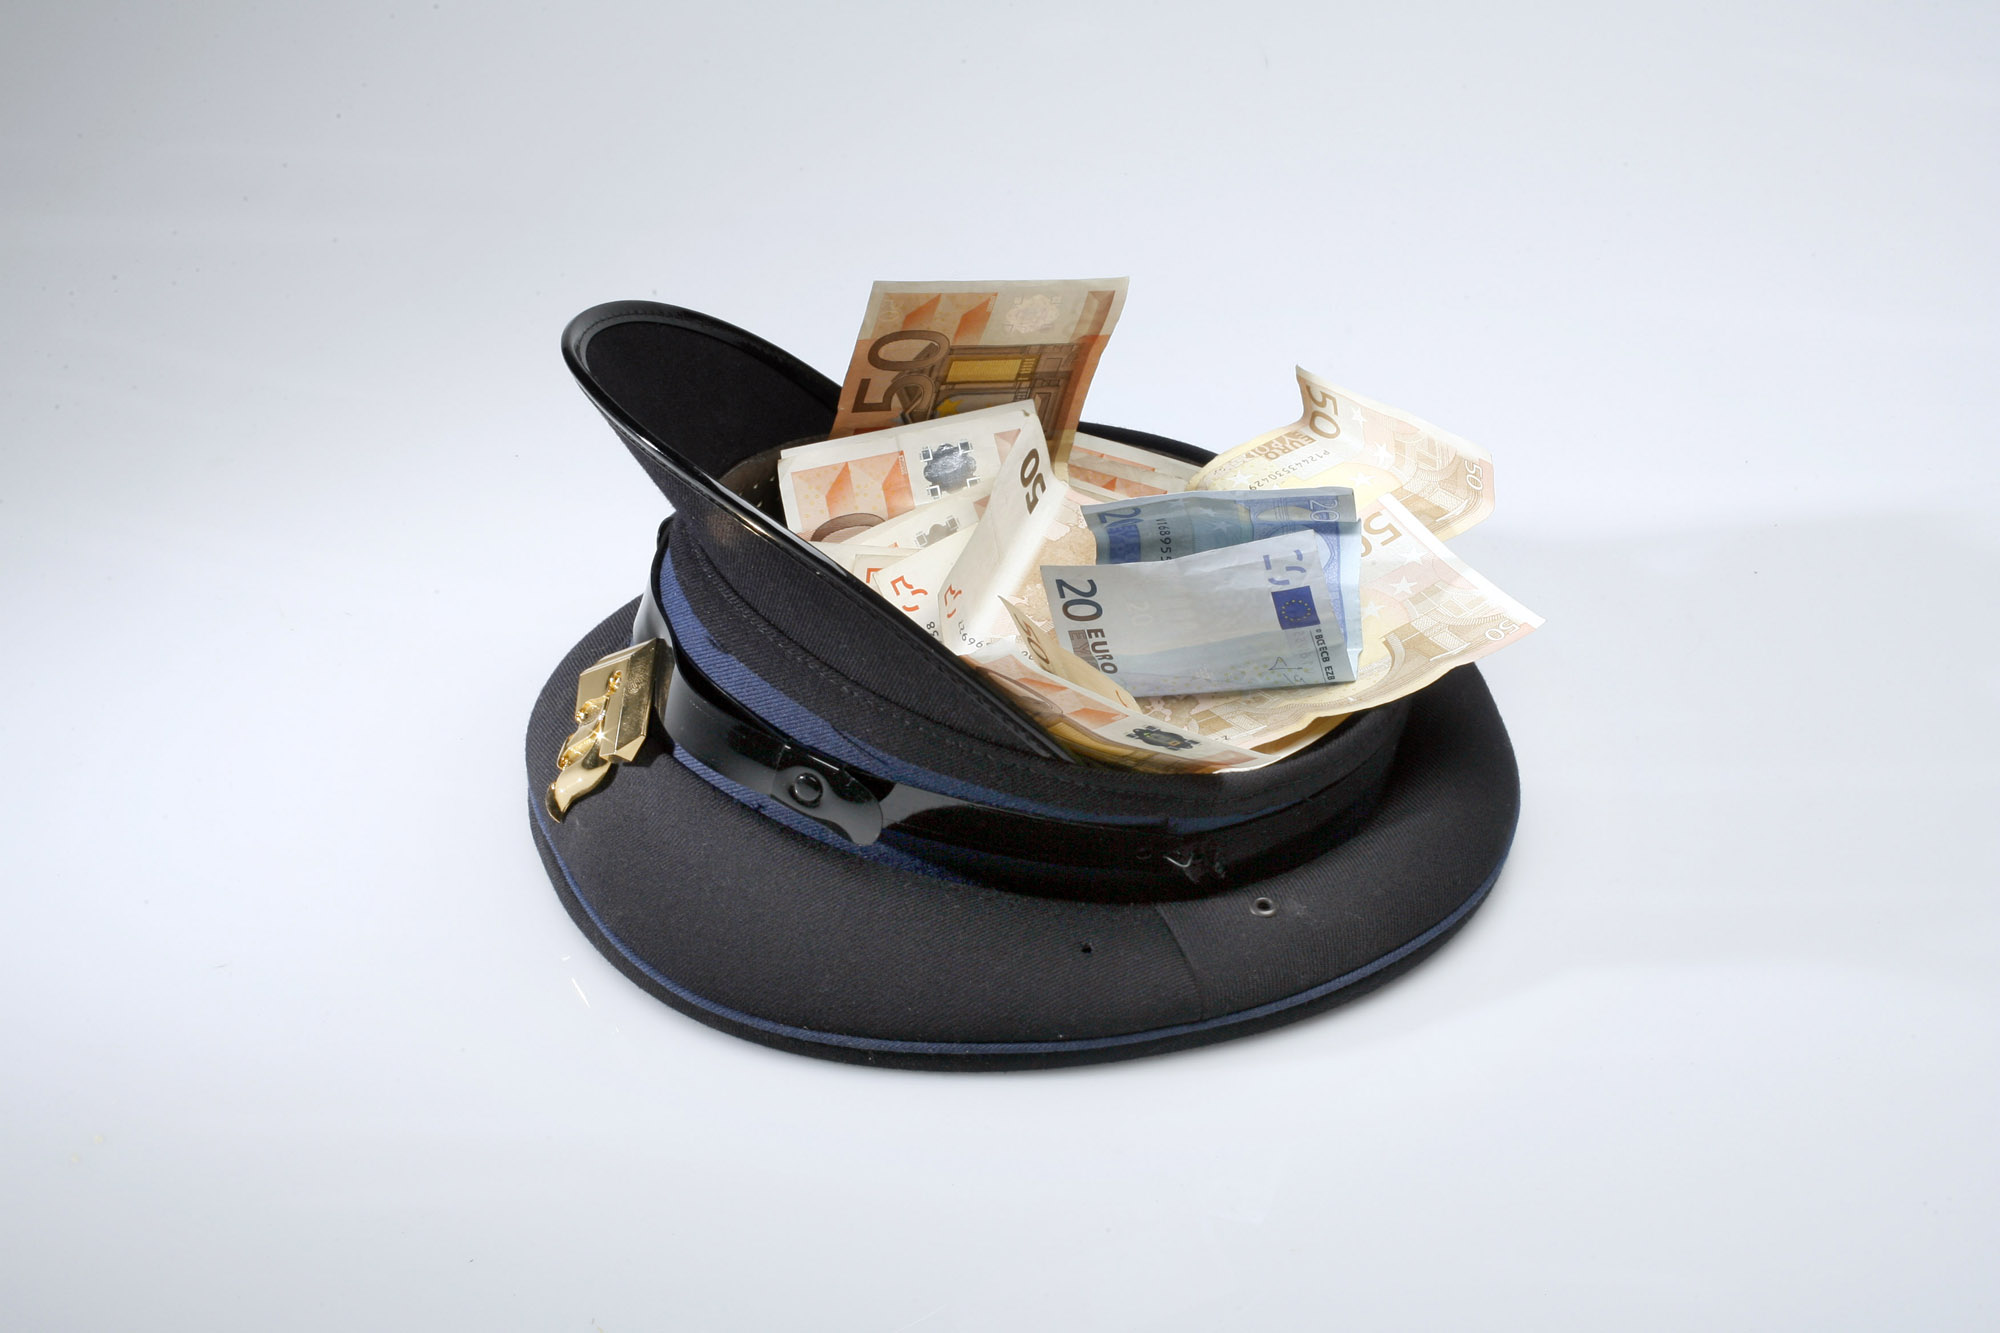 geld, money, euro, omkoping, corruption, politie, police, politiepet, corruptie, venality, briefgeld, papiergeld, bills